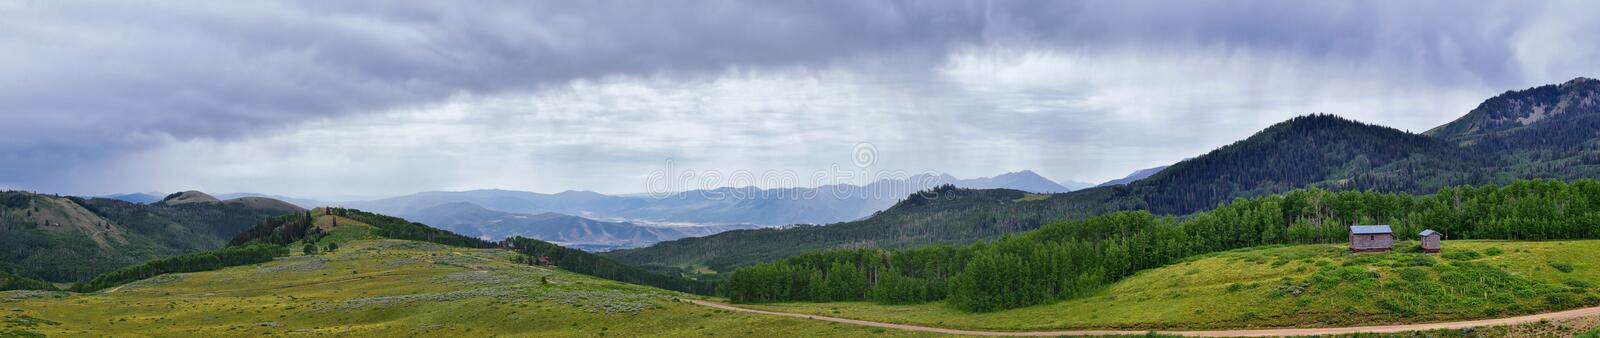 Guardsman Pass views of Panoramic Landscape of the Pass, Midway and Heber Valley along the Wasatch Front Rocky Mountains, Summer F. Orests, Clouds and Rainstorm royalty free stock photography